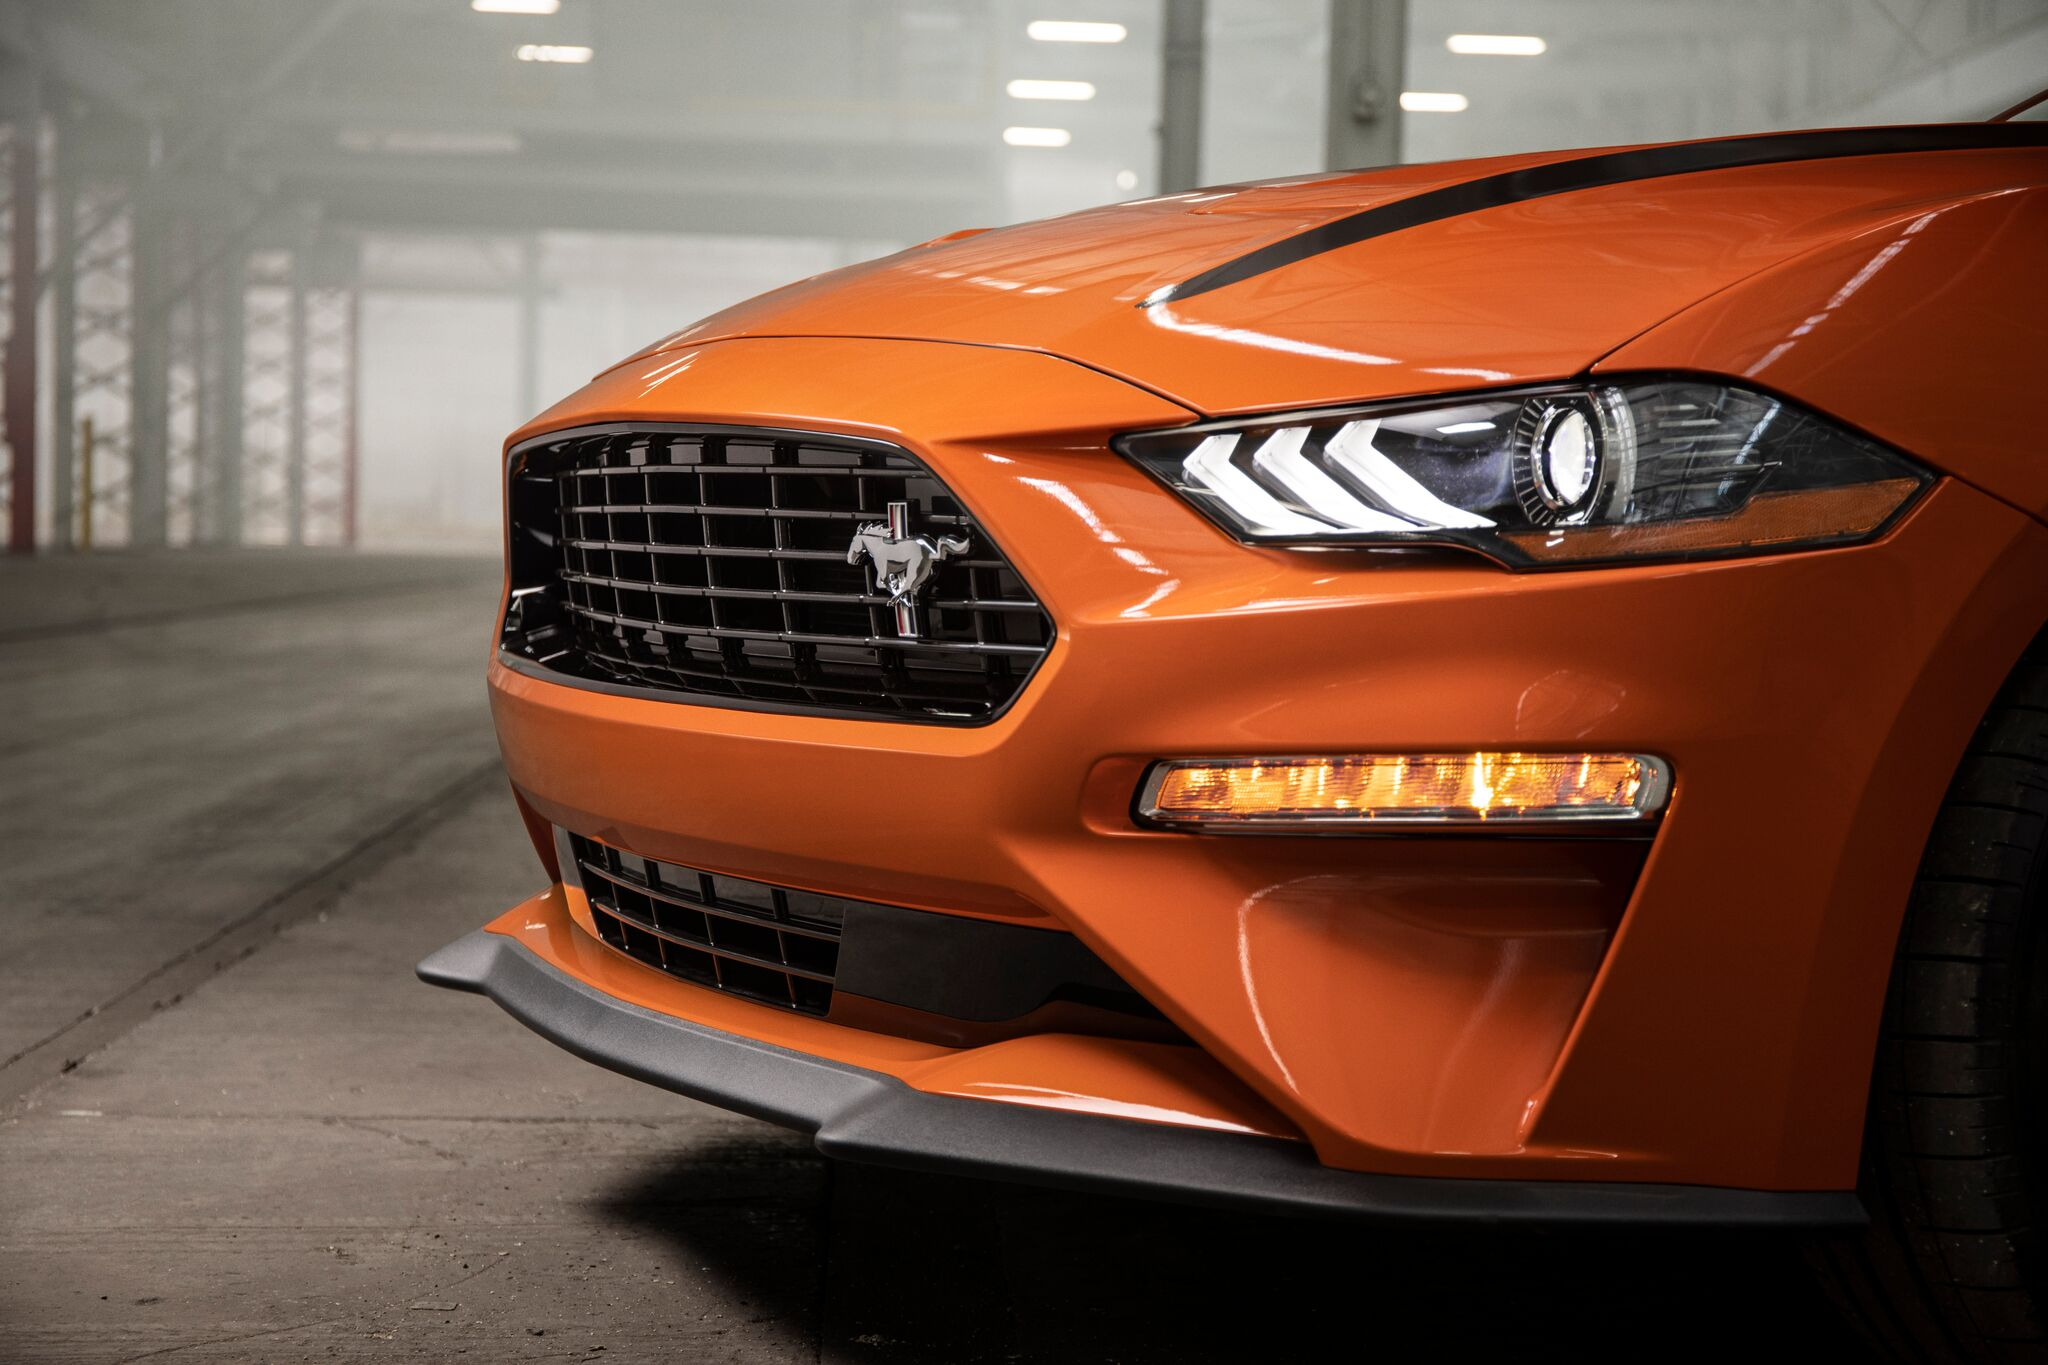 What Is The 2020 Mustang High Performance Package? - What Is The 2020 Mustang High Performance Package?